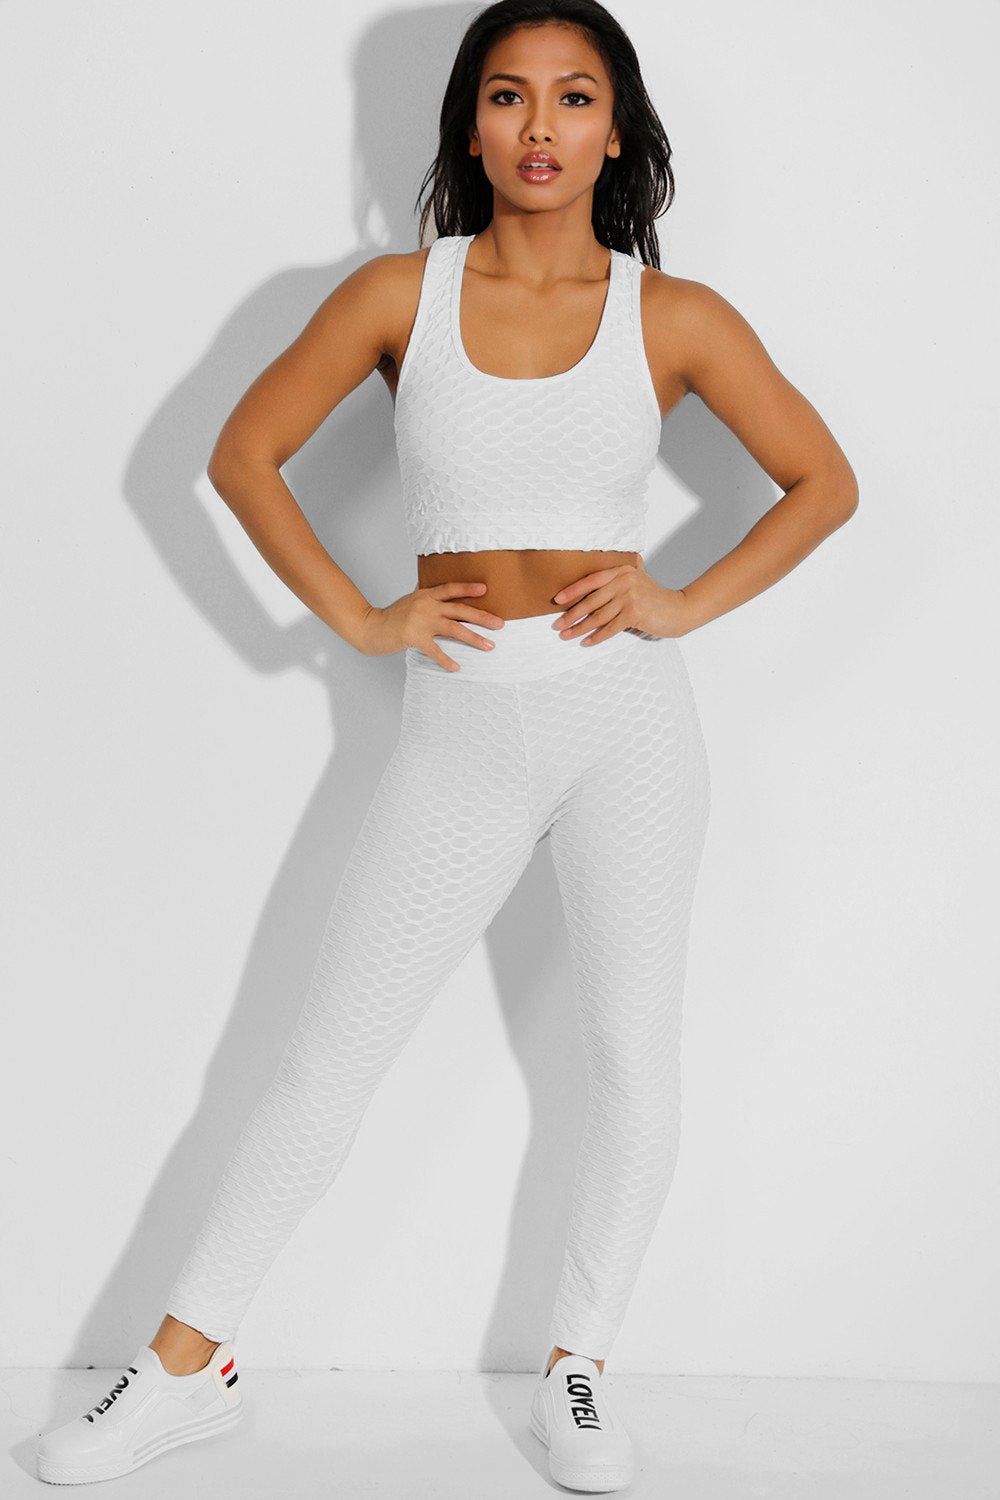 Shorso Two-Piece Yoga Set Sports Crop Top and Yoga Leggings in White